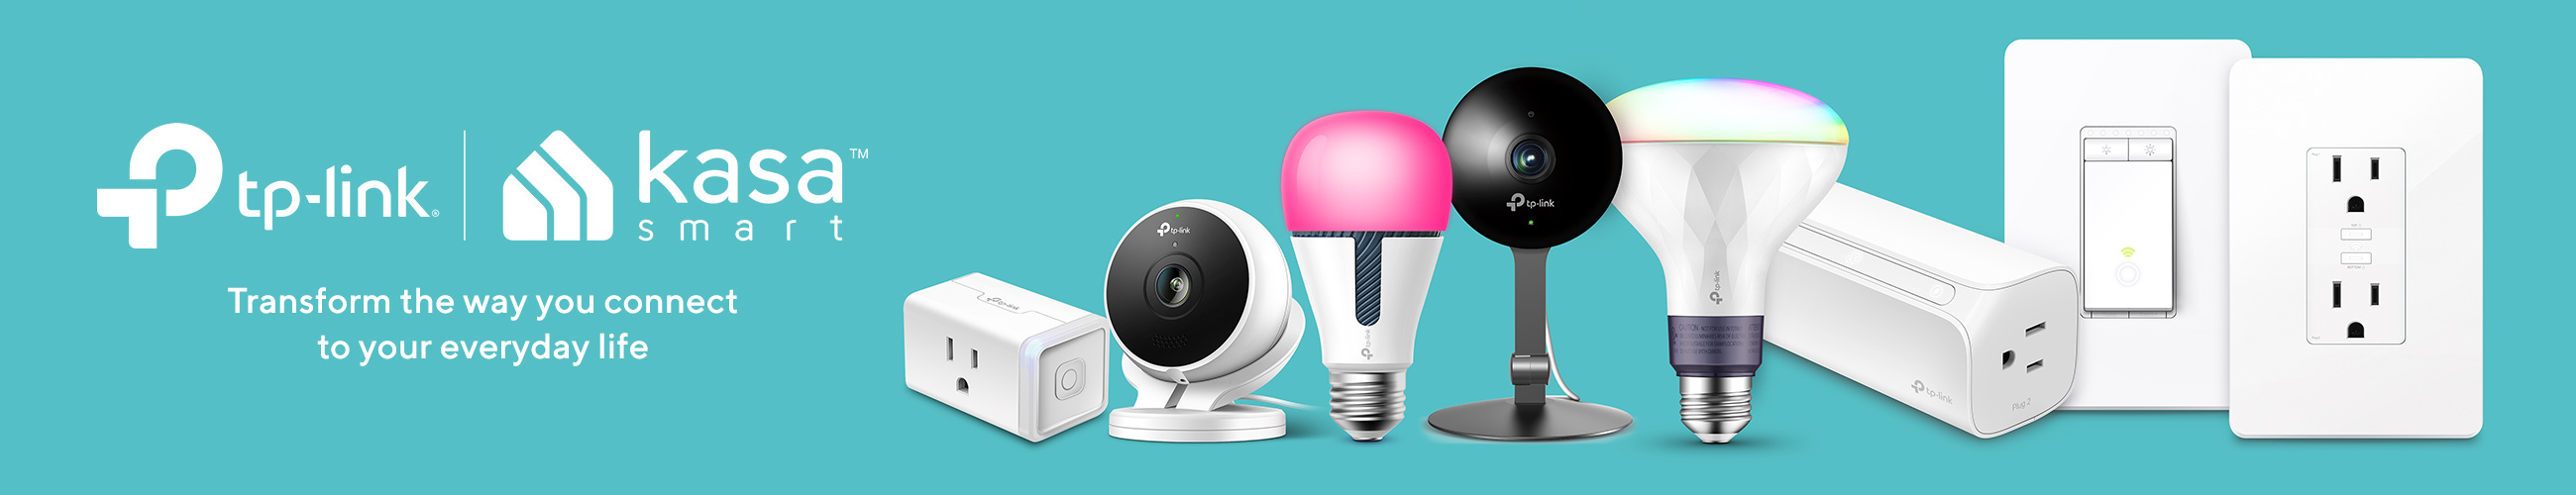 TP-Link — Transform the way you connect to your everyday life